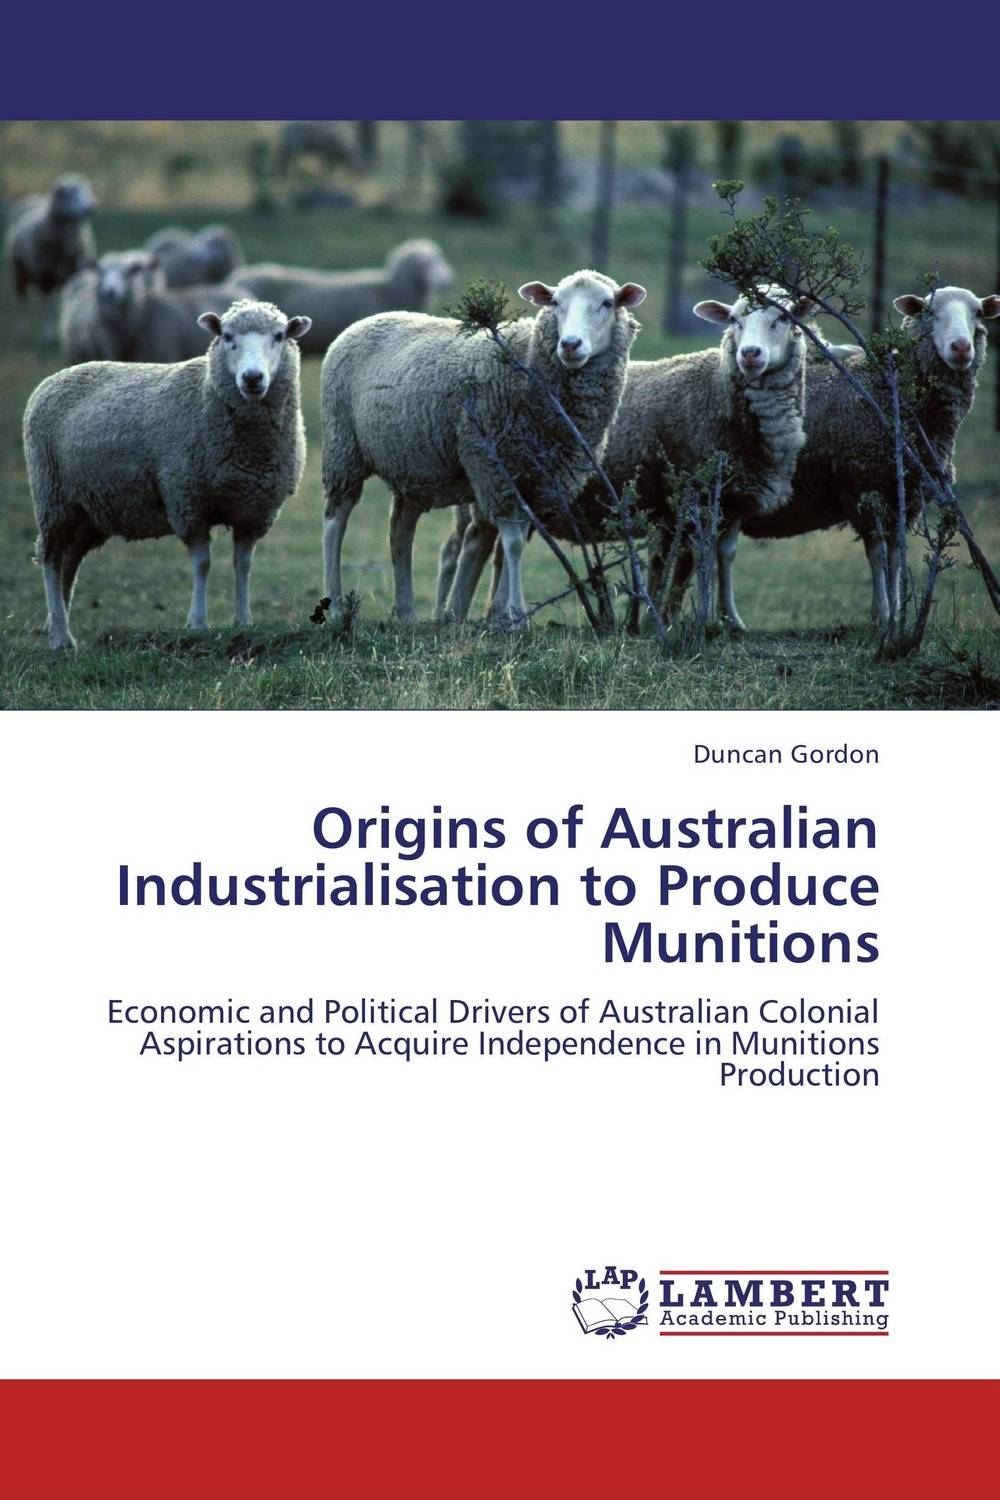 Origins of Australian Industrialisation to Produce Munitions